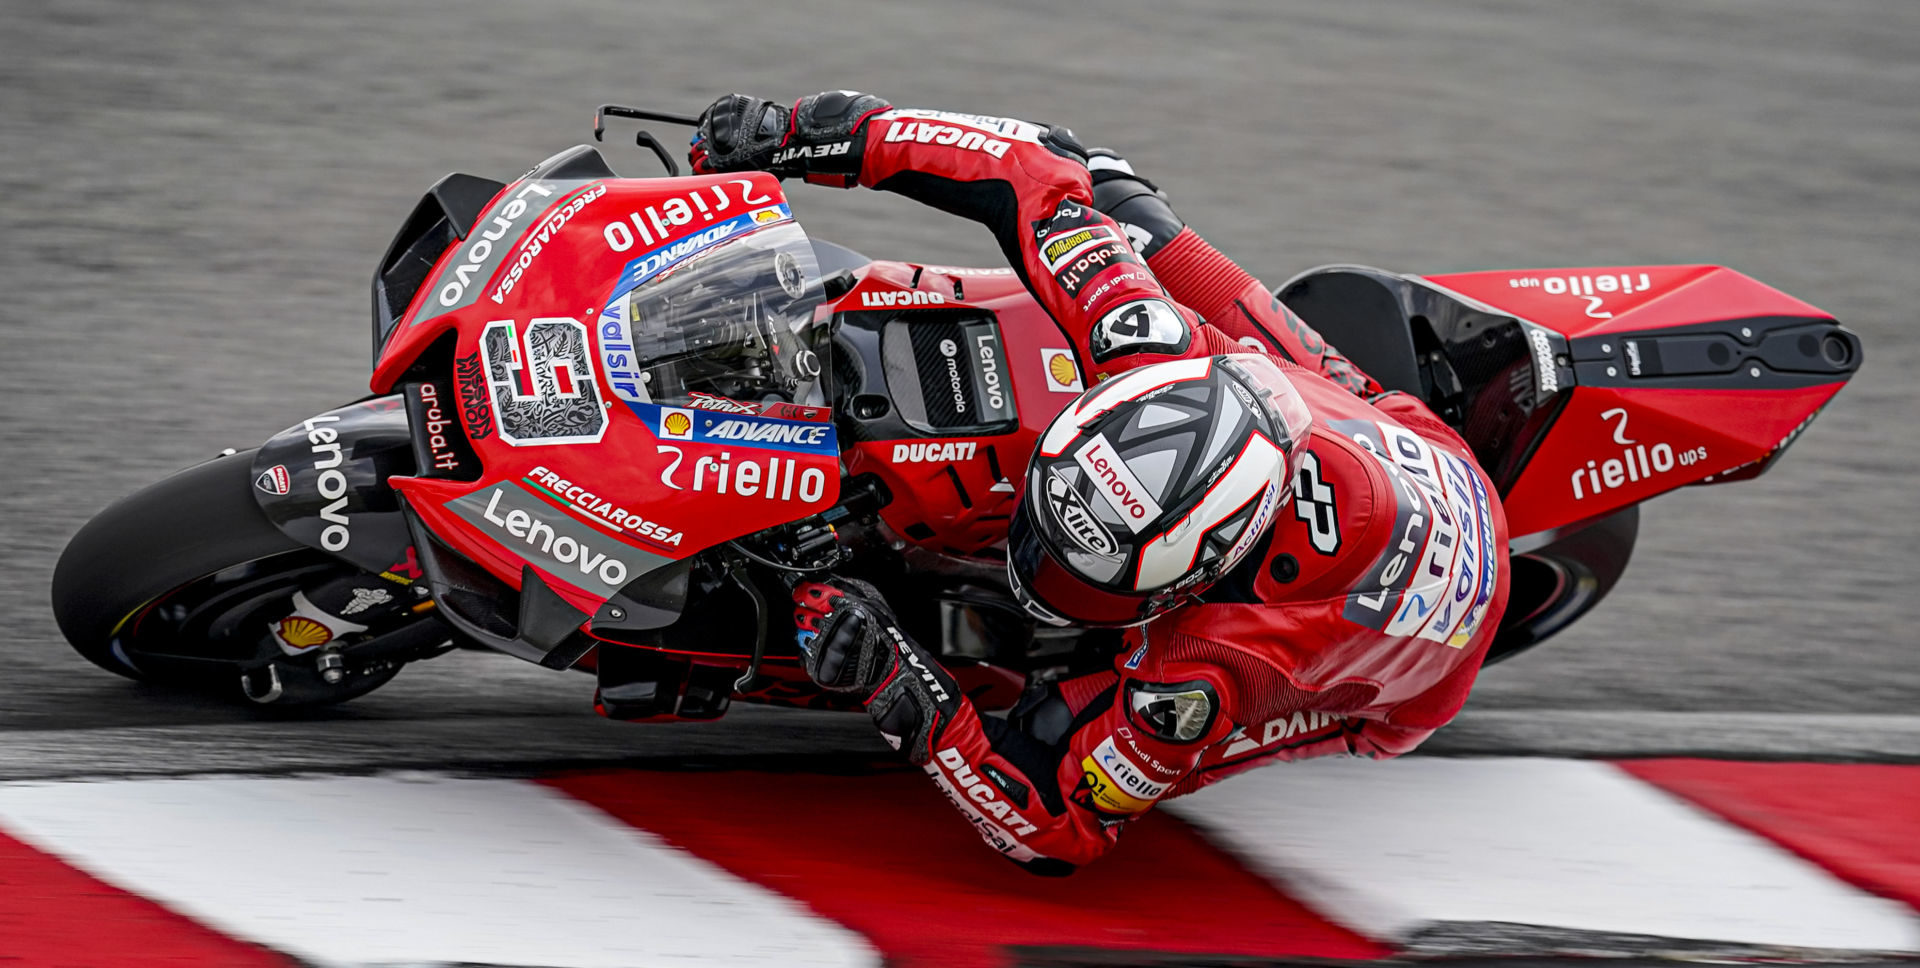 Danilo Petrucci (9). Photo courtesy of Ducati.